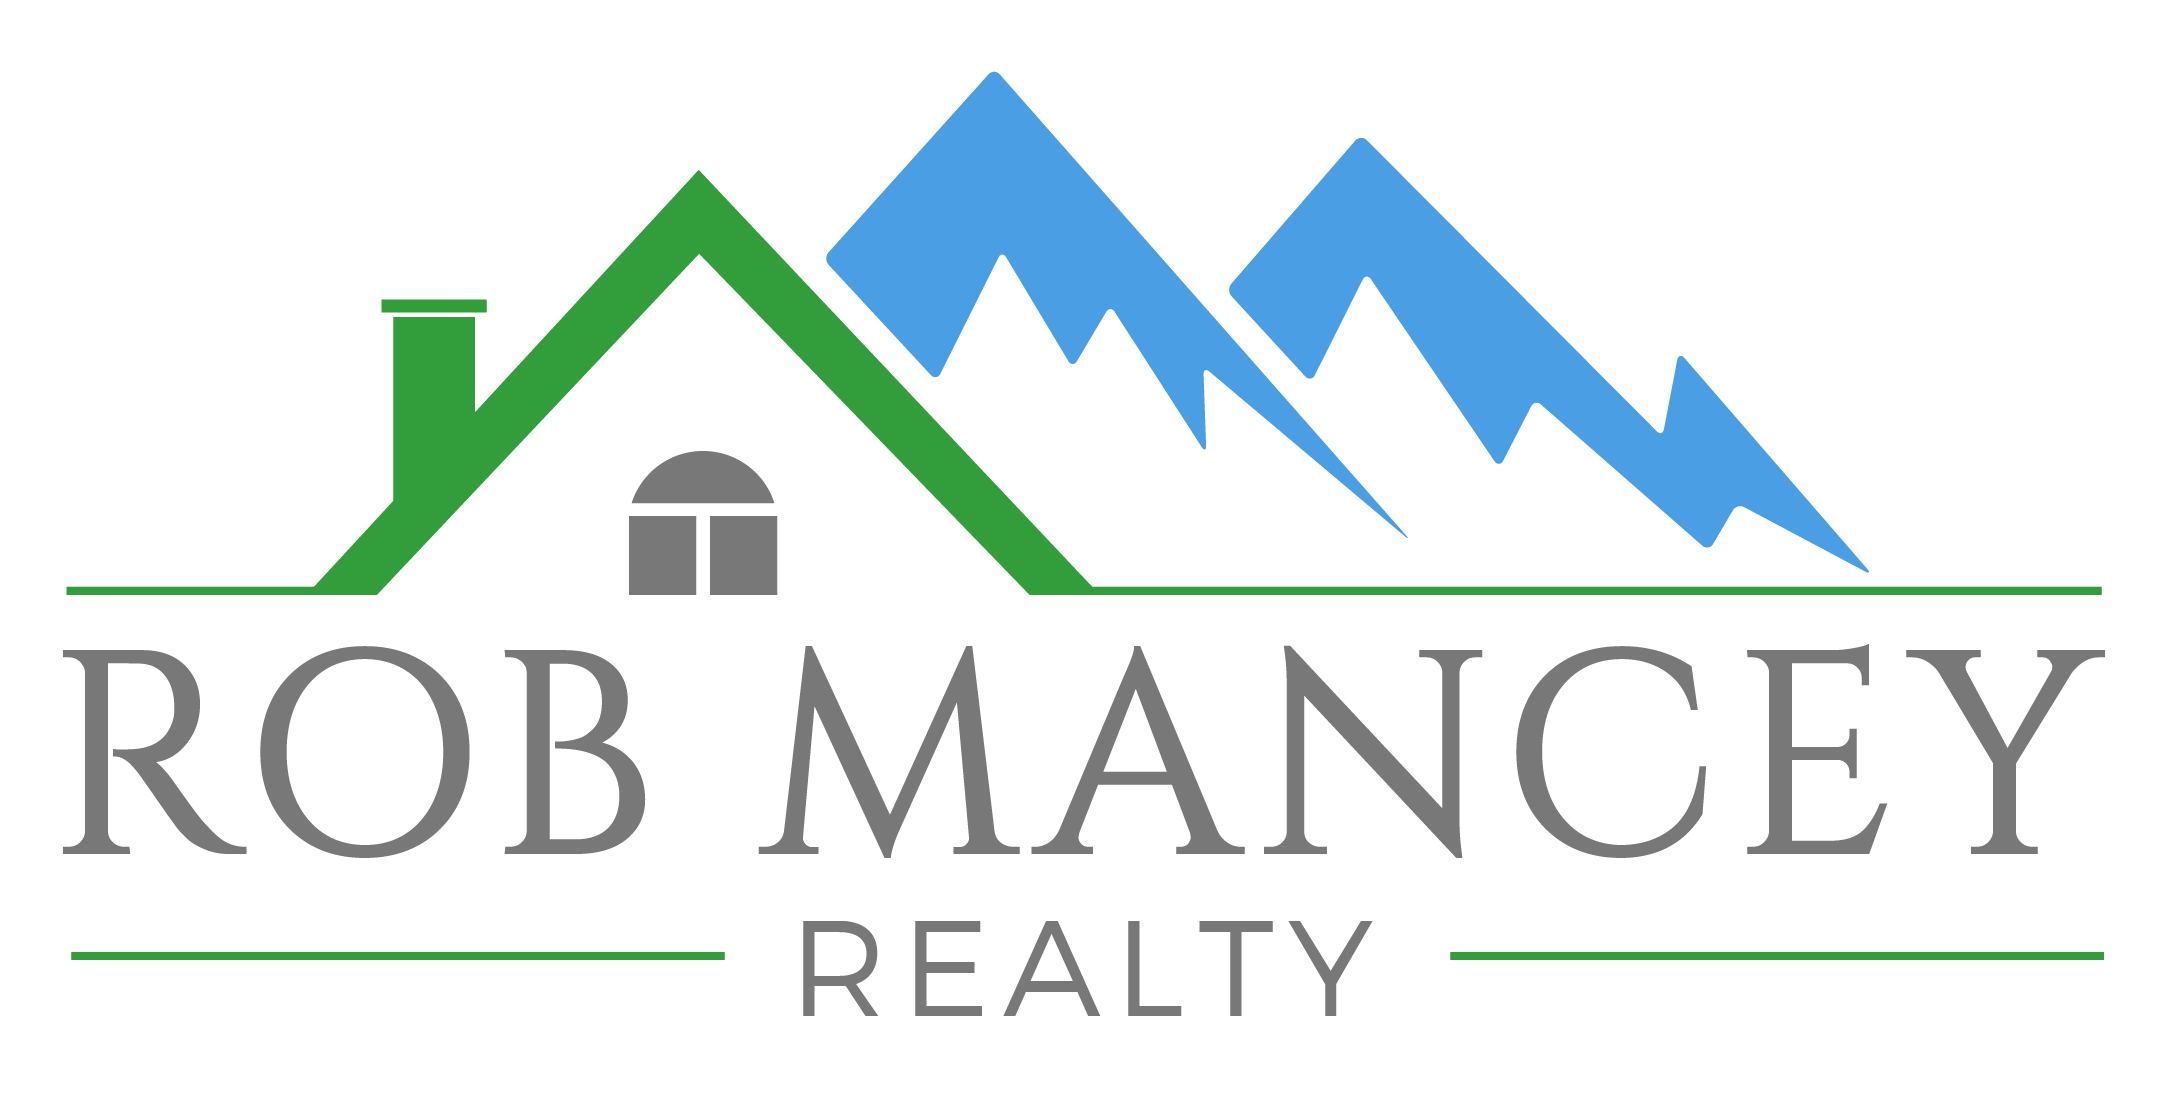 Rob Mancey Real Estate